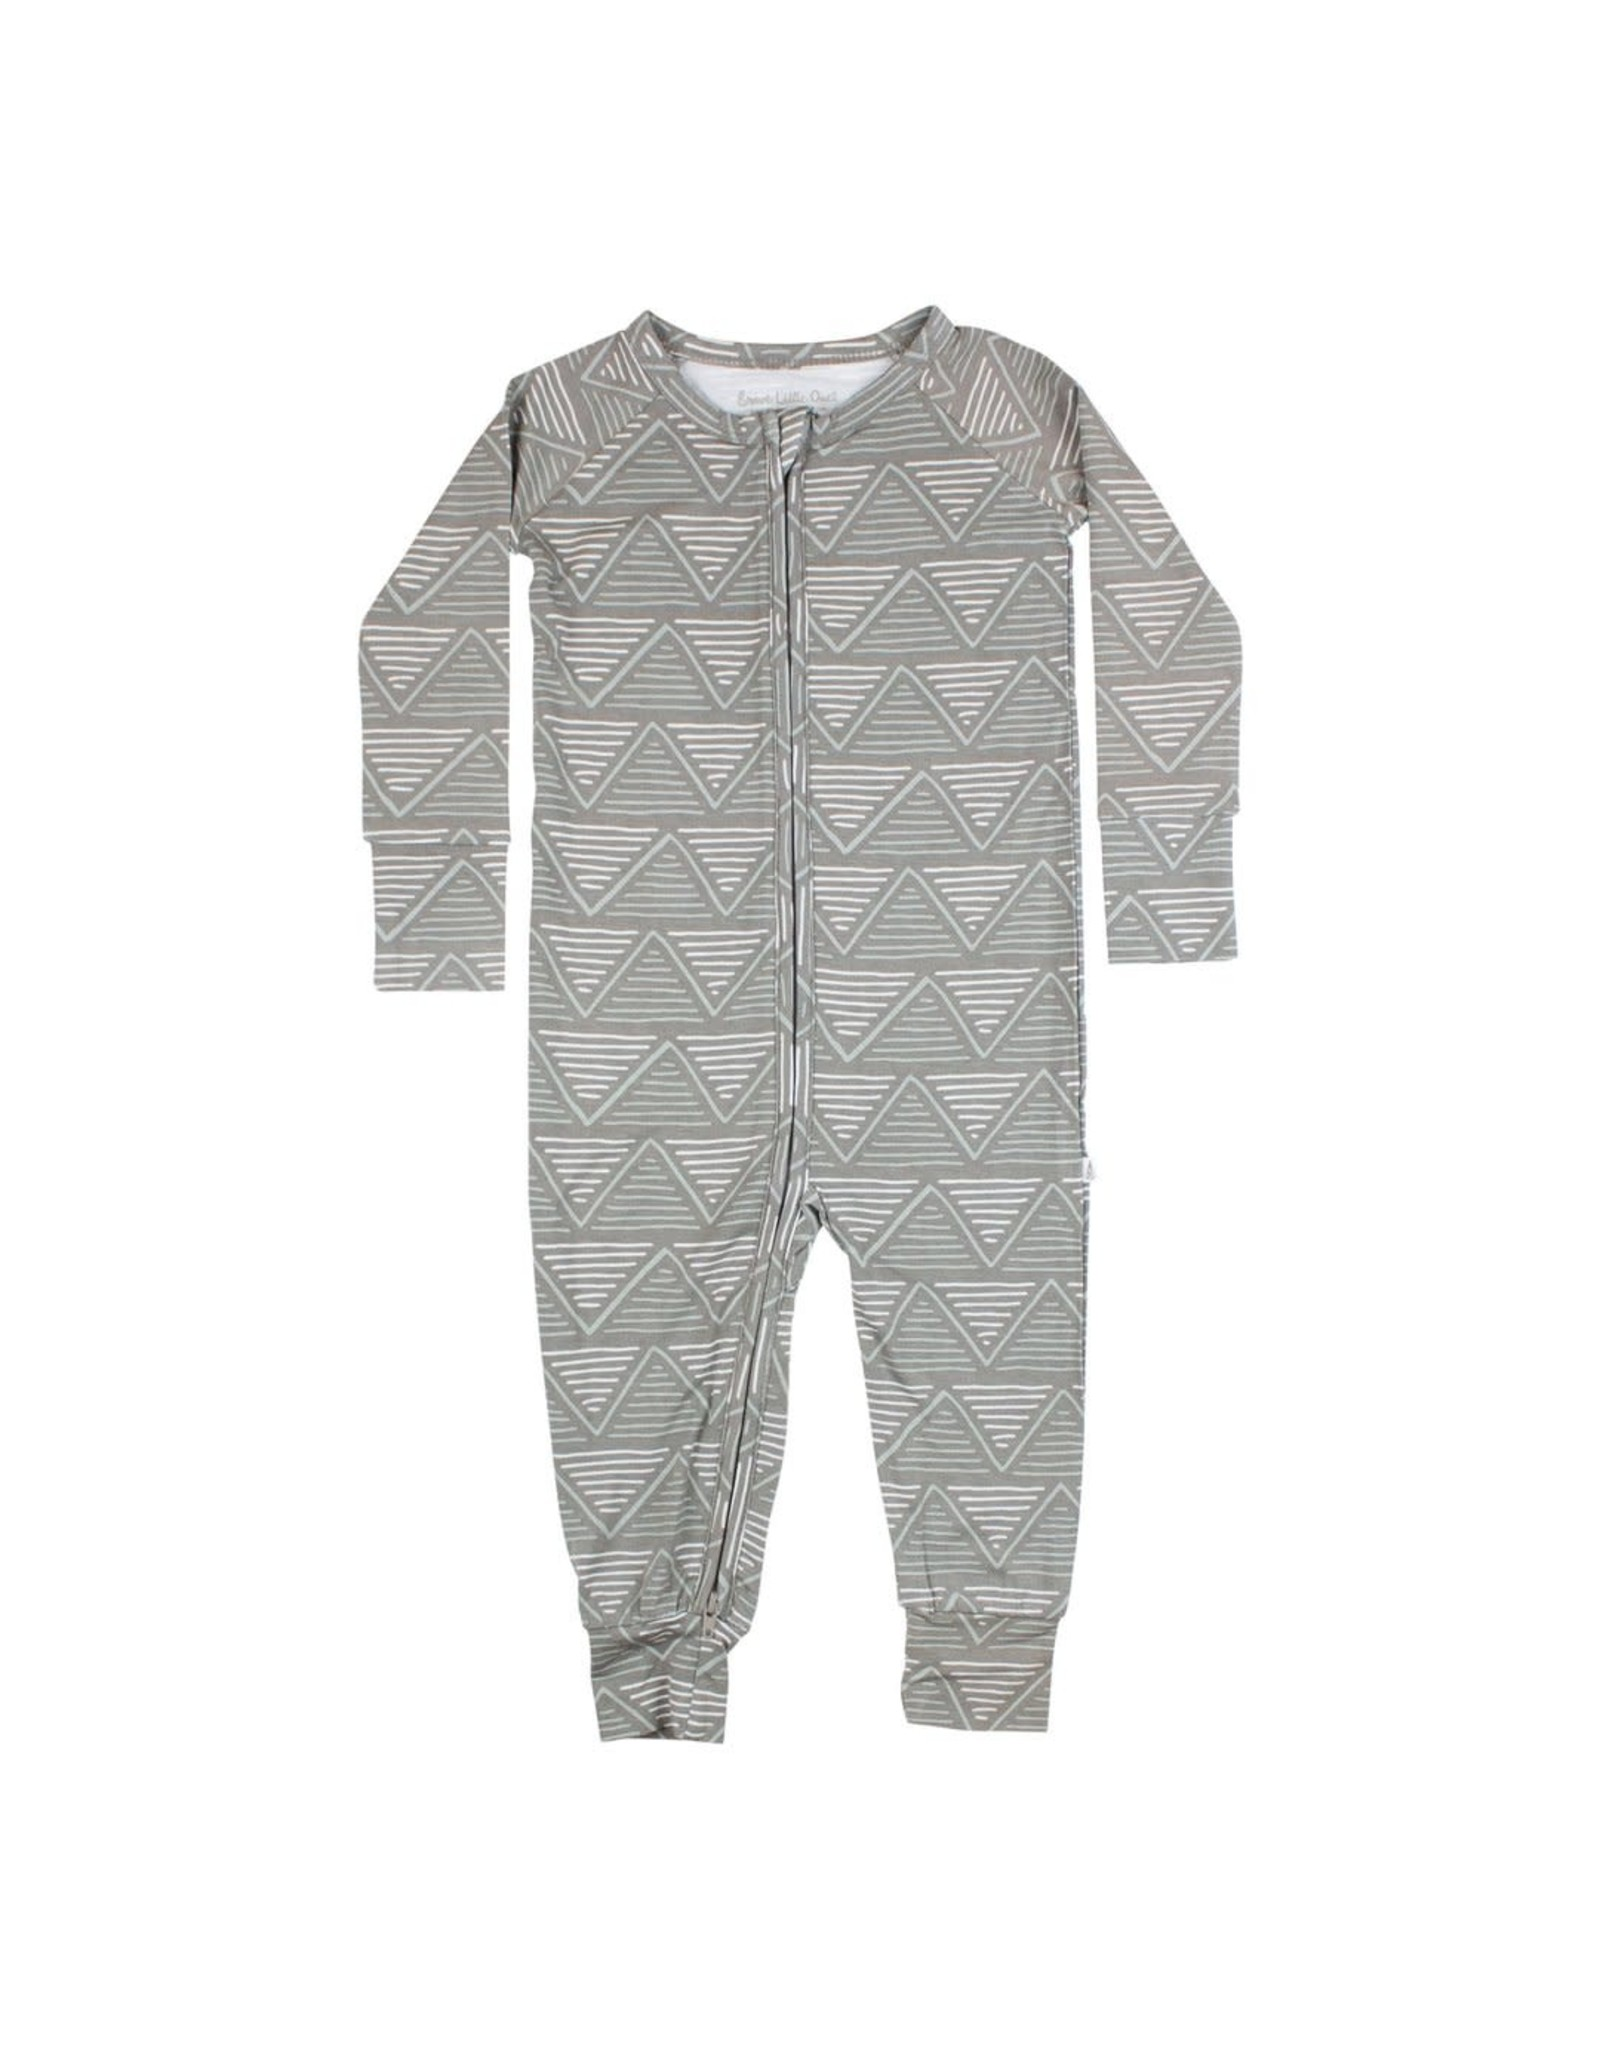 Brave Little Ones Brave Little Ones- Charcoal Triangles Zip Romper